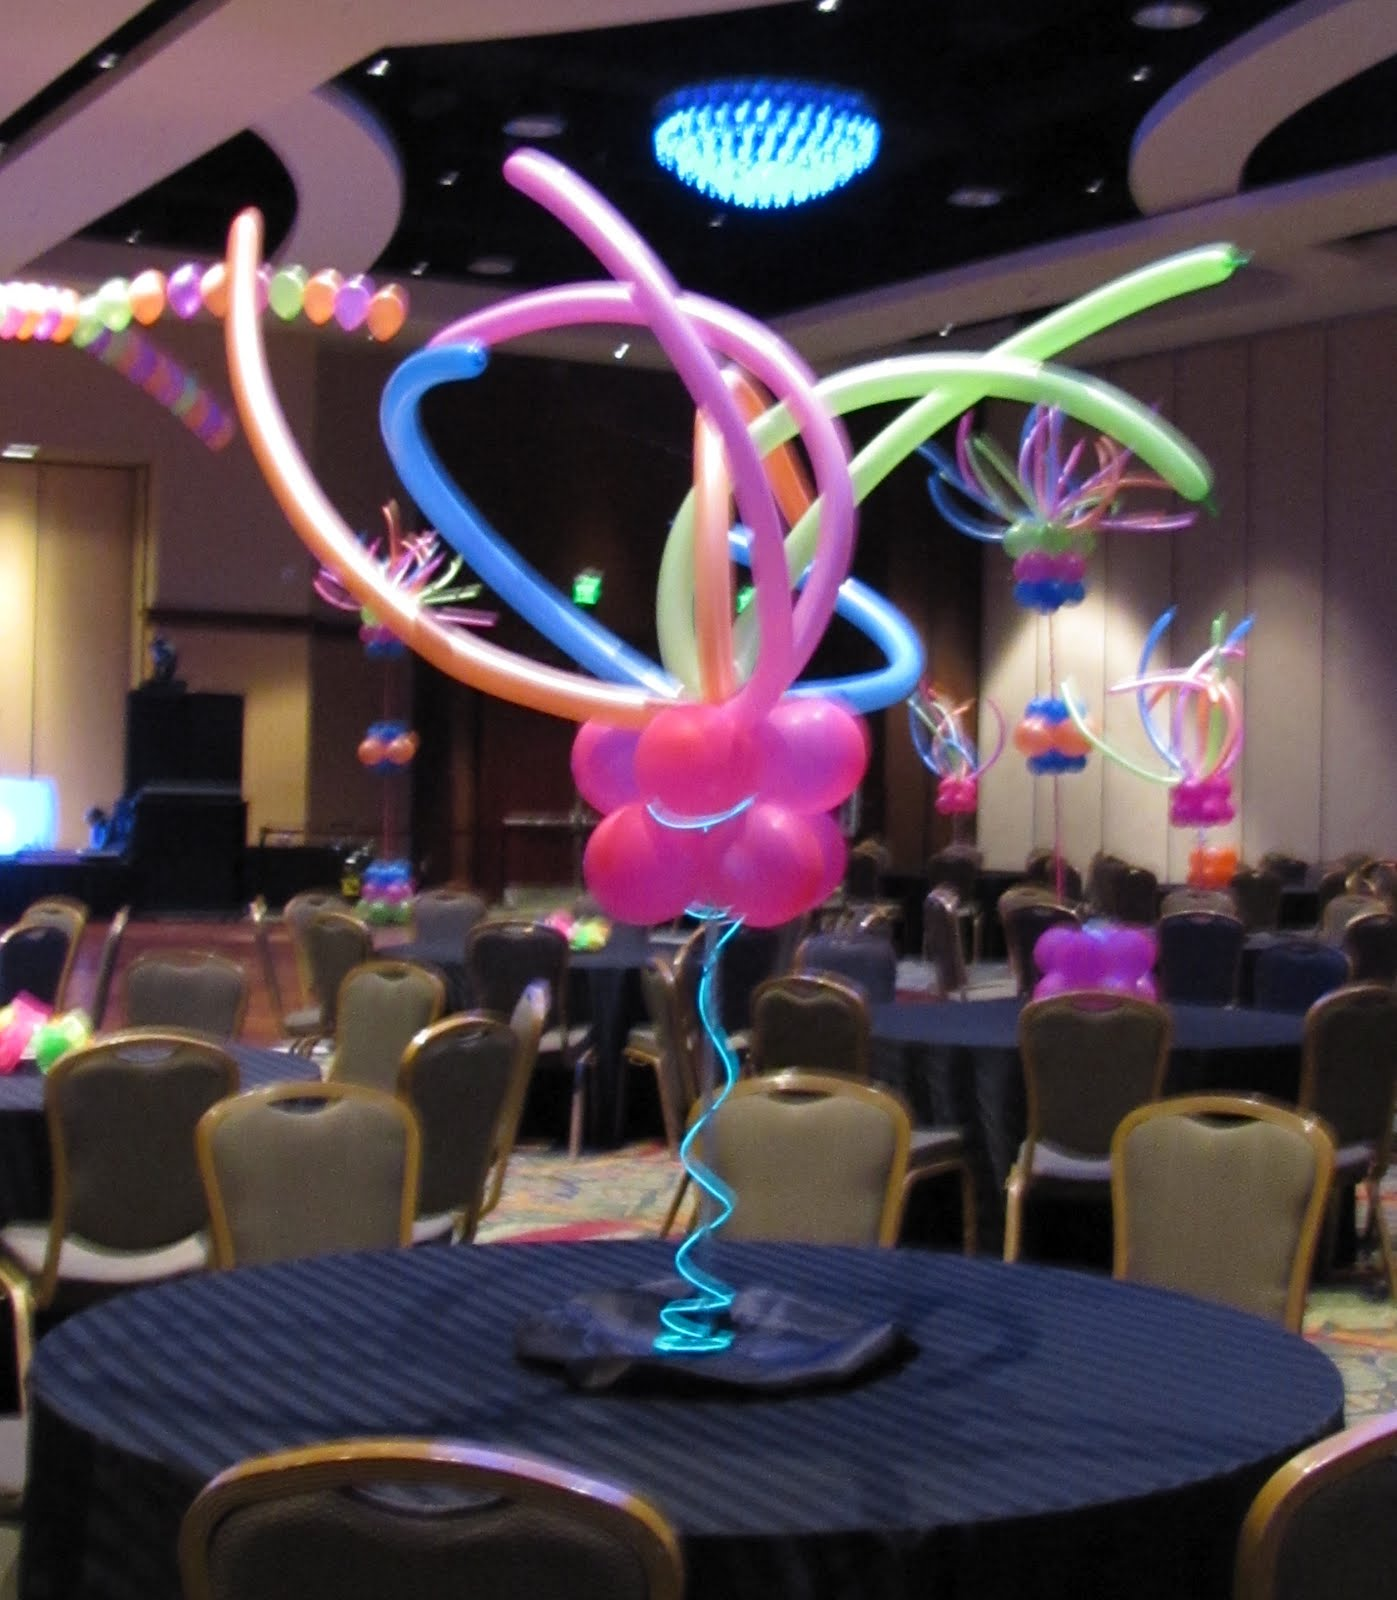 Party people event decorating company april 2012 for Balloon decoration accessories